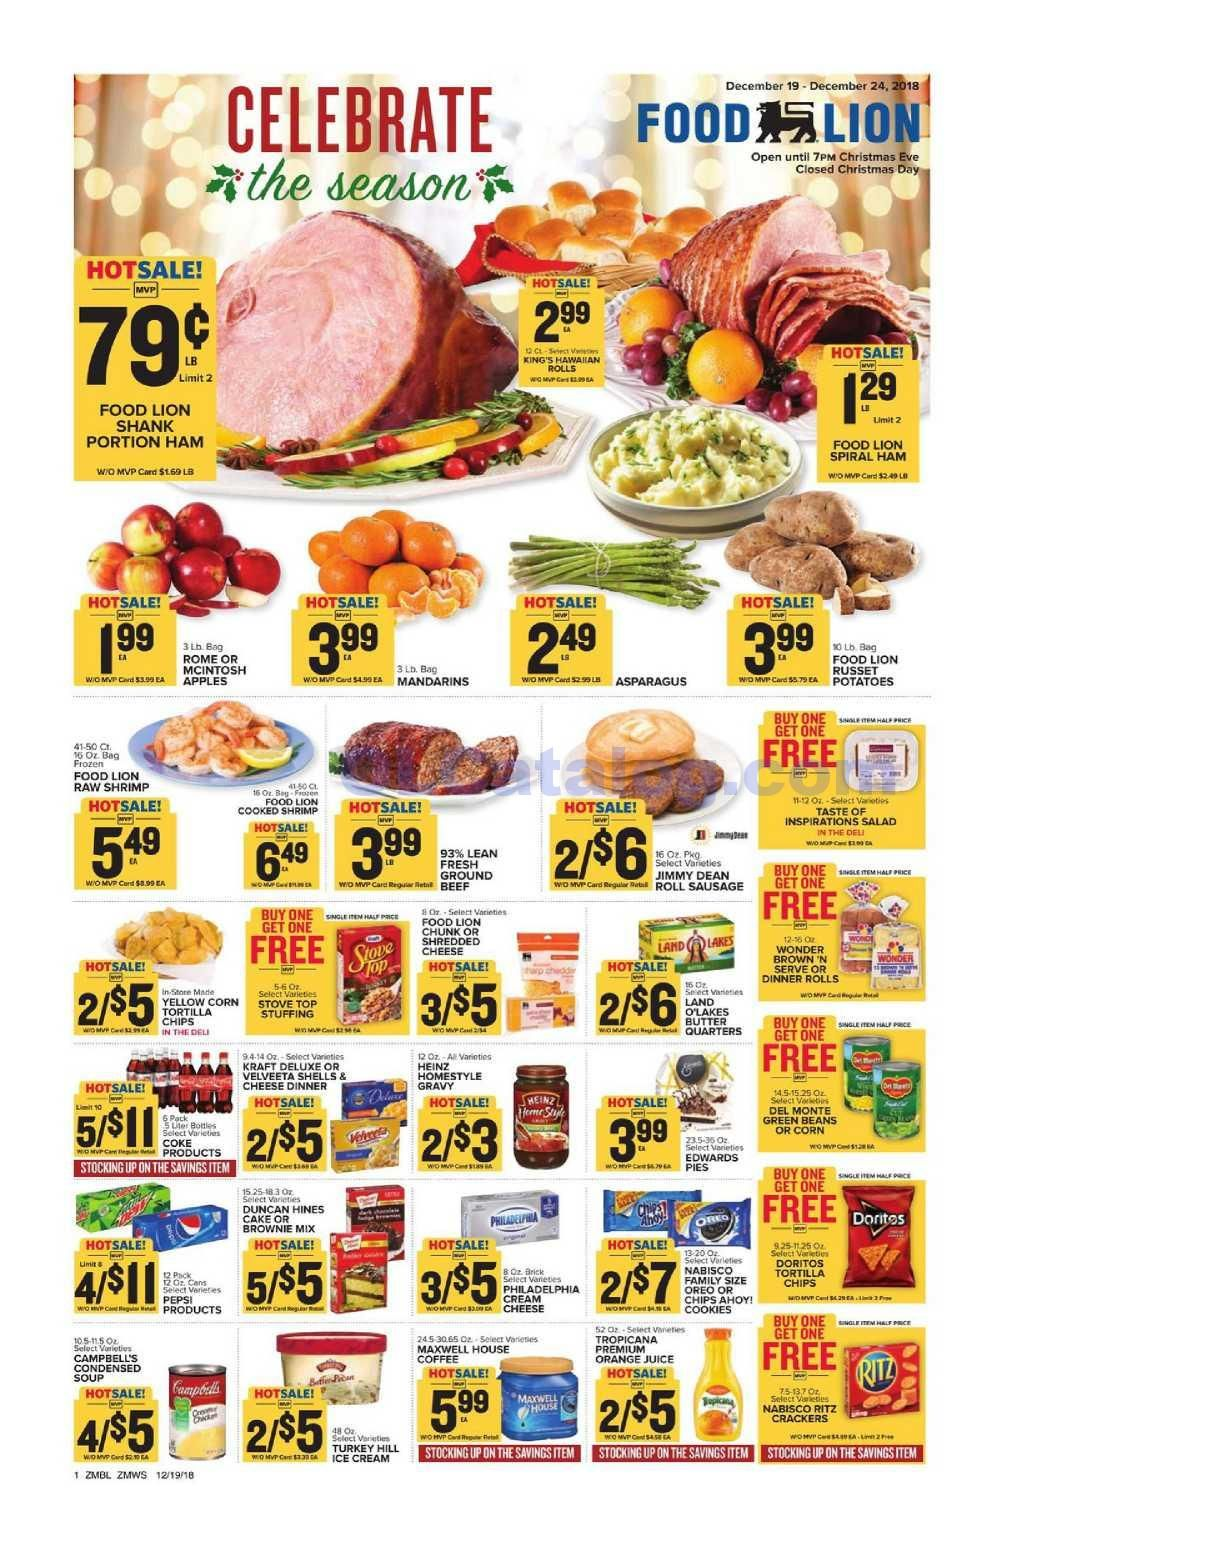 Food Lion Weekly Ad December 19 24 2018 Do You Know What S In And What S Hot In The Food Lion For This Week If You Haven T Using The Store S Weekly Advert